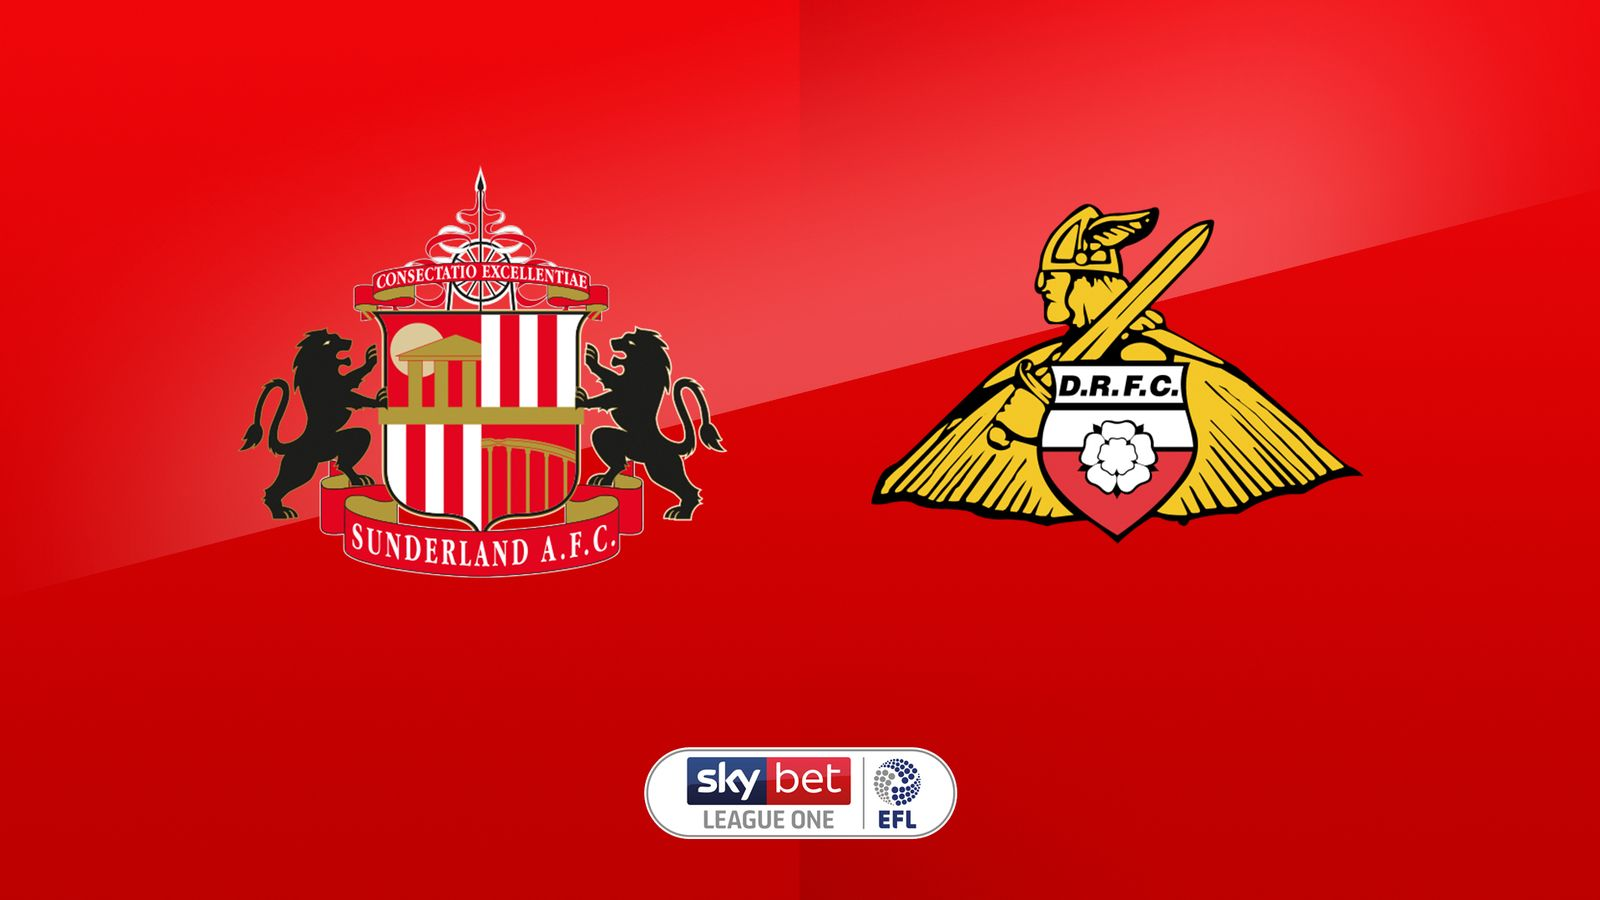 Sunderland vs Doncaster preview: League One clash live on Sky Sports Football